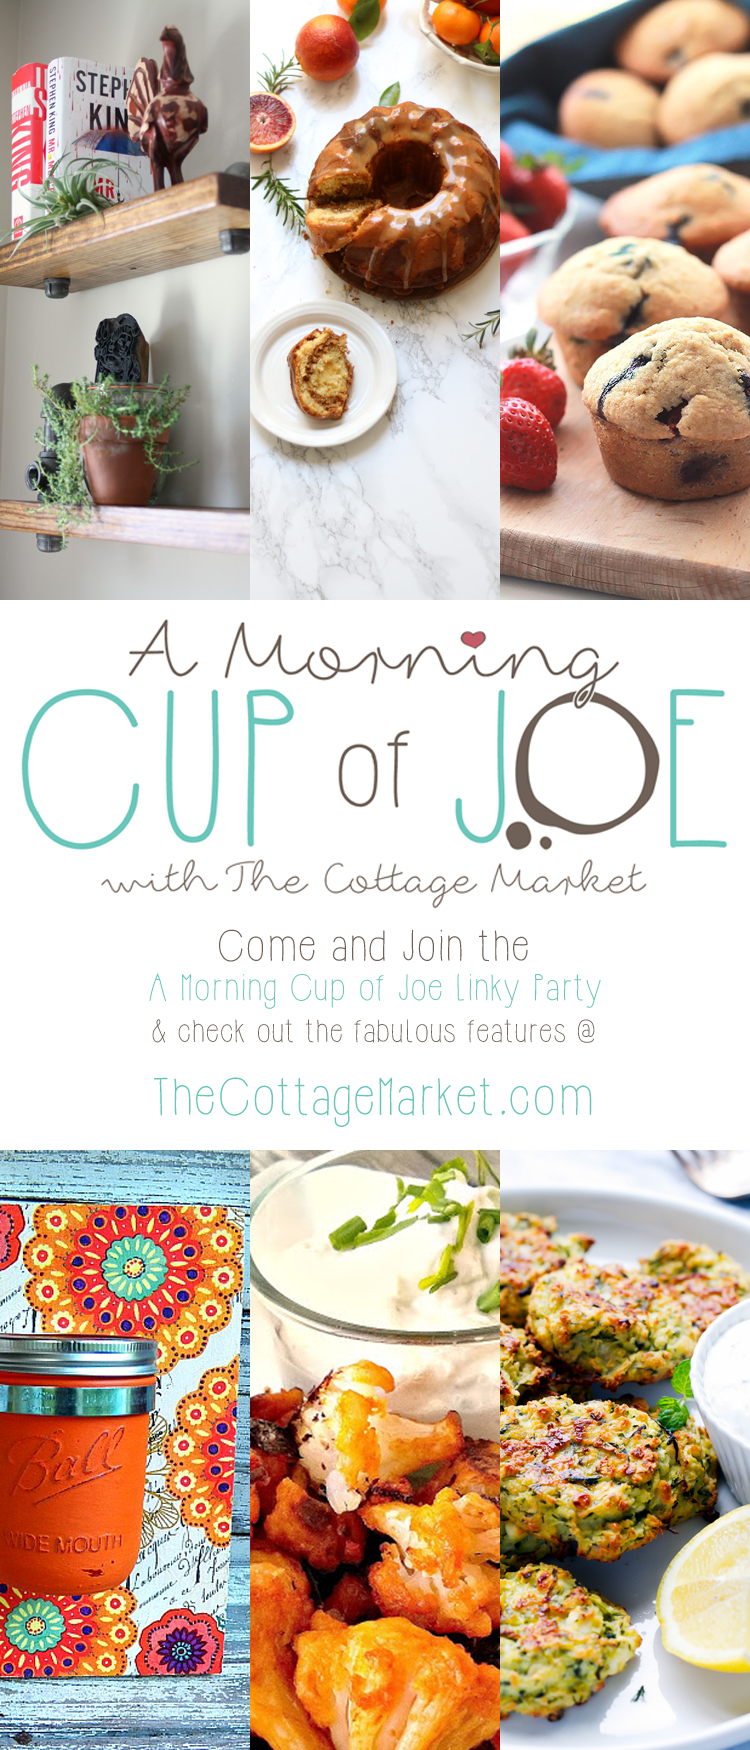 http://thecottagemarket.com/wp-content/uploads/2016/03/cuppa31116.png